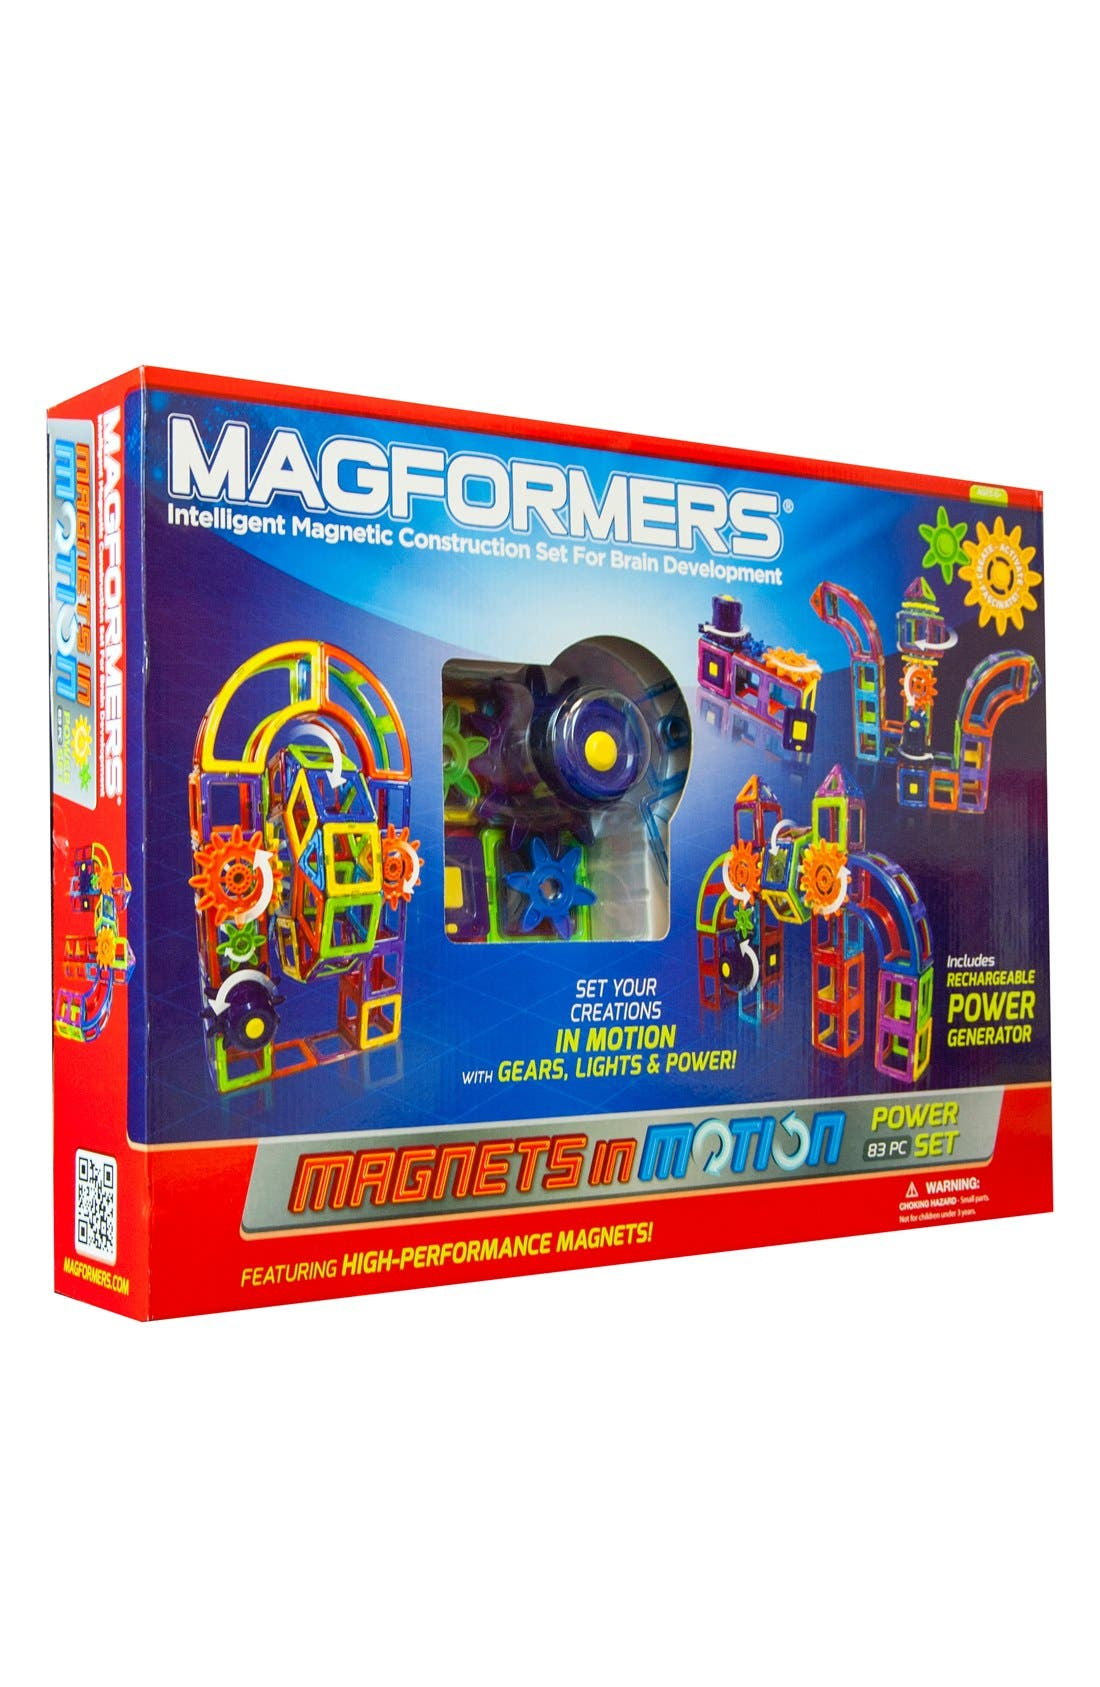 MAGFORMERS 'Magnets in Motion' Magnetic 3D Construction Set